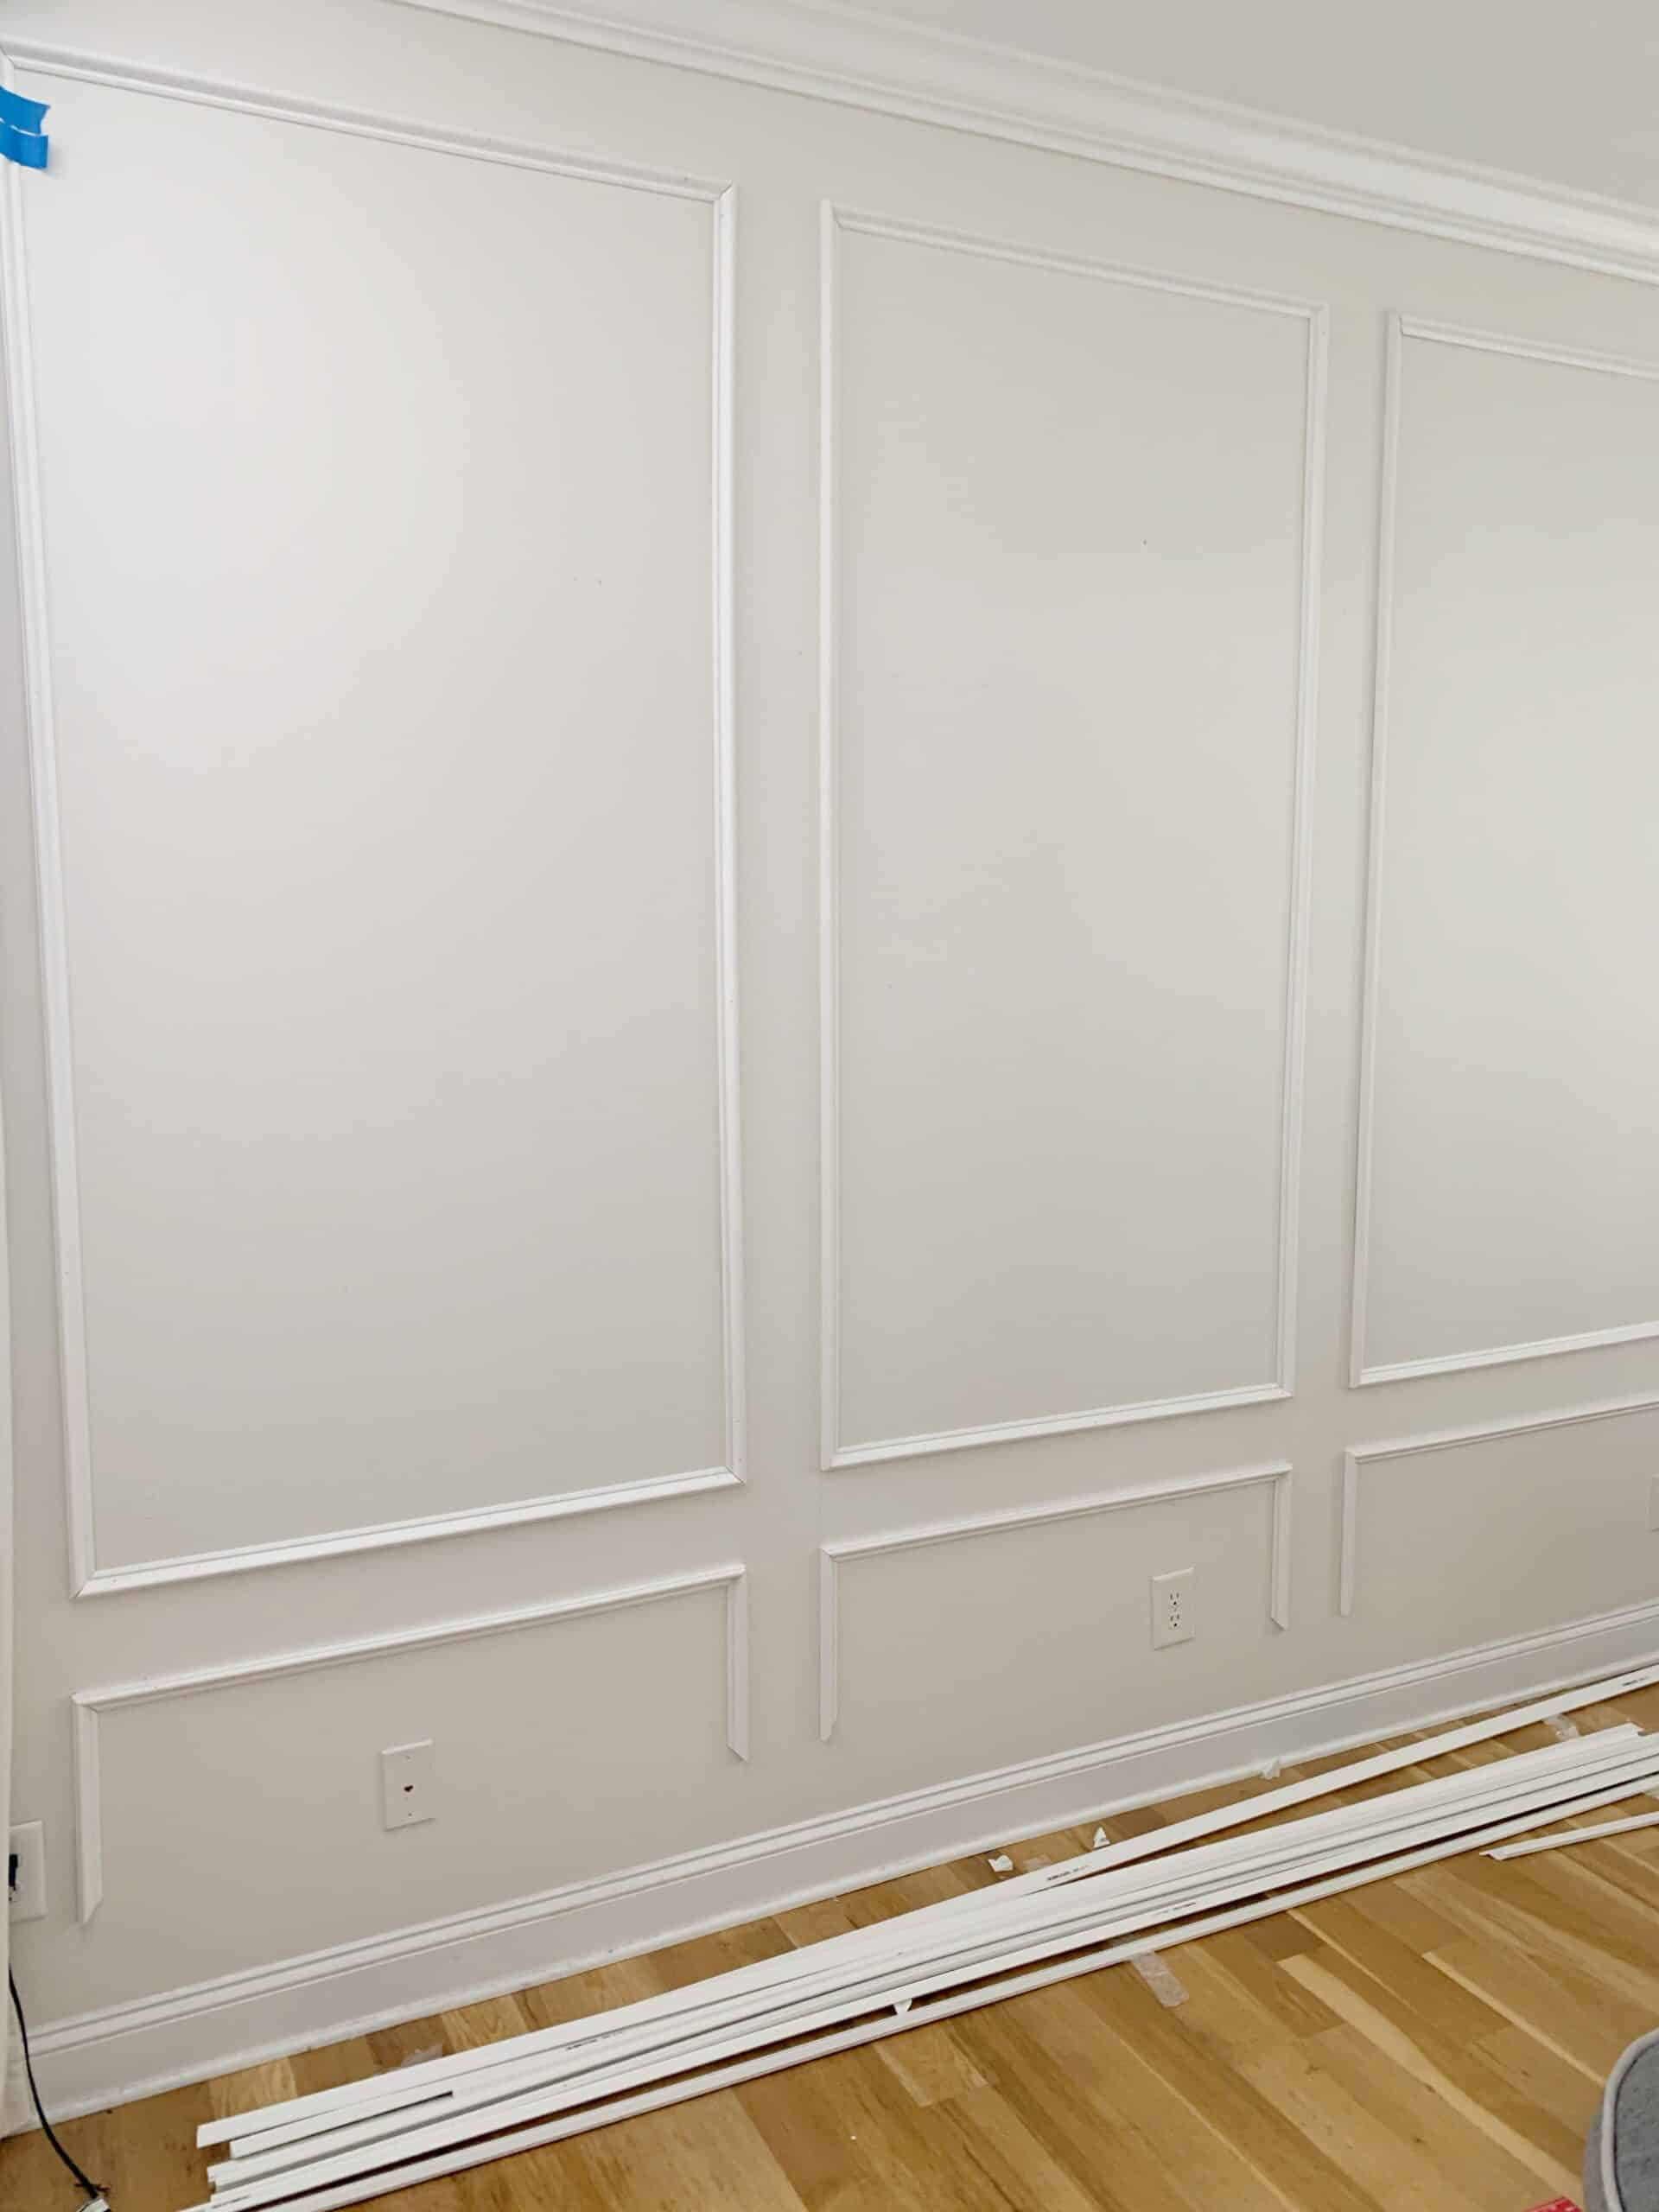 How to install picture frame molding, the easy way, using miter shears and PVC molding.  No saw required.  #millwork #molding #moulding #pictureframemolding #pictureframemoulding #pvctrim #pvcmillwork #walltrim #walltreatment